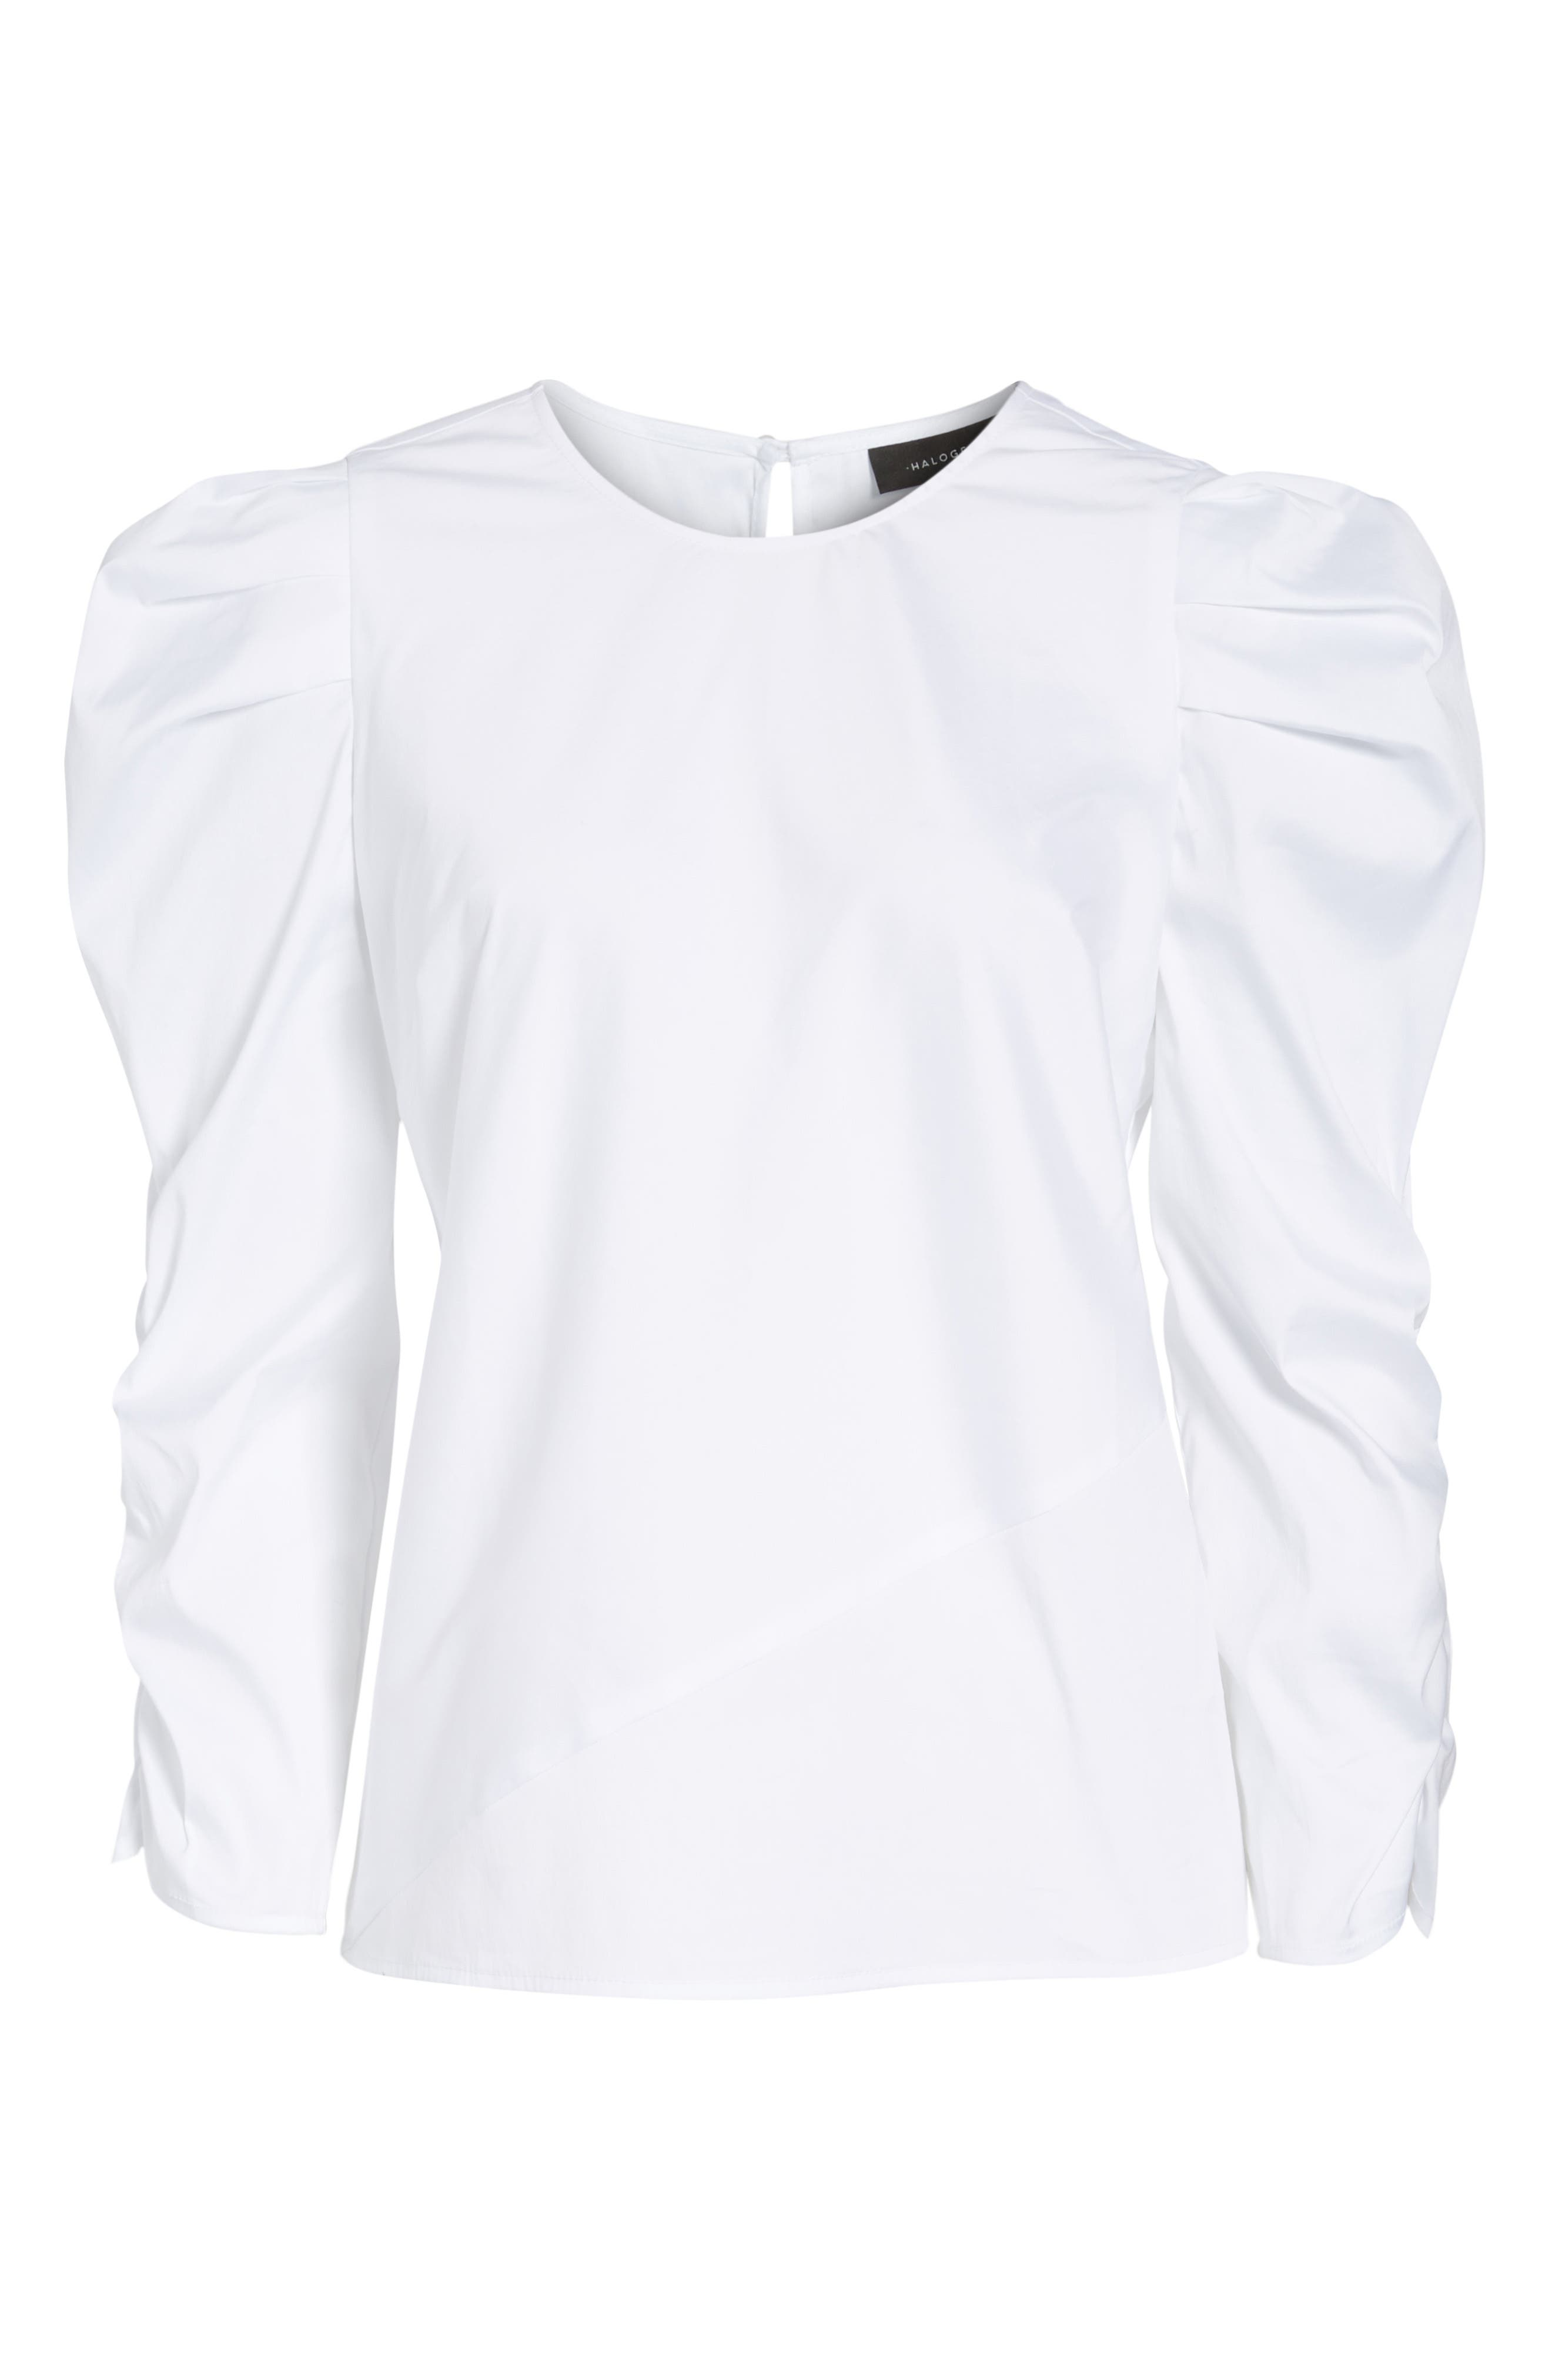 Ruched Sleeve Poplin Top,                             Alternate thumbnail 6, color,                             100